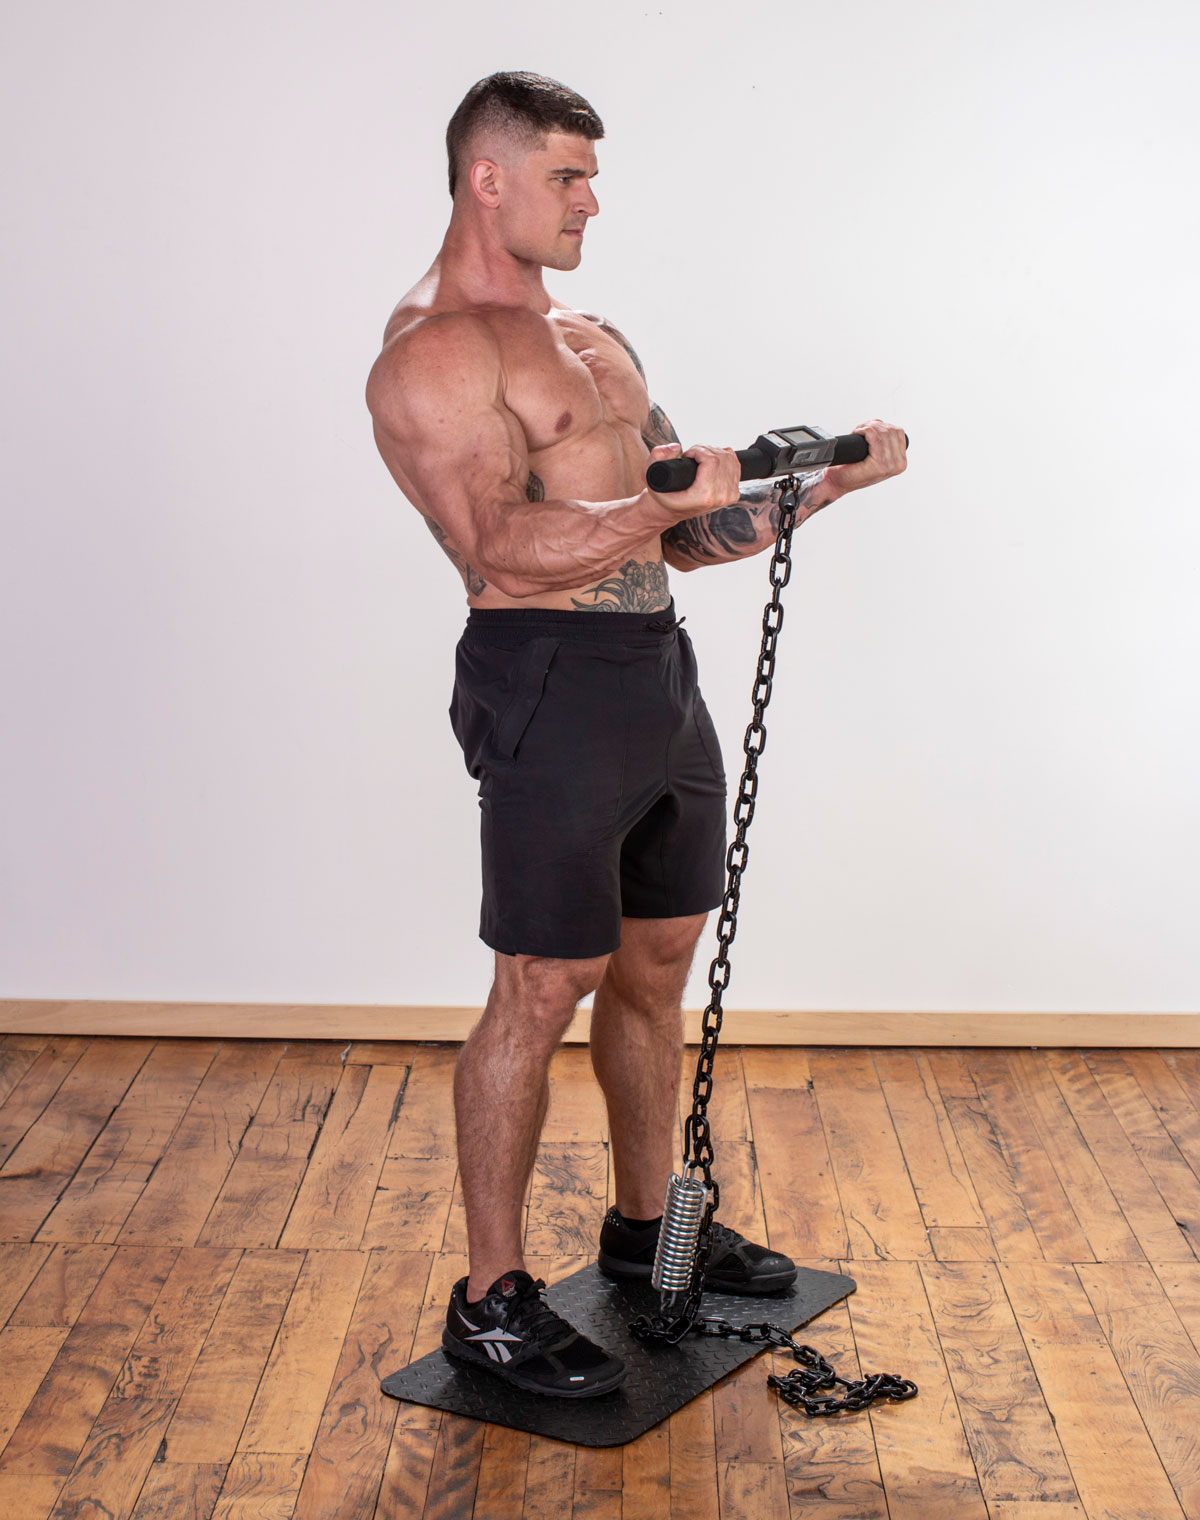 muscular male athlete performing Isochain Bicep Curl